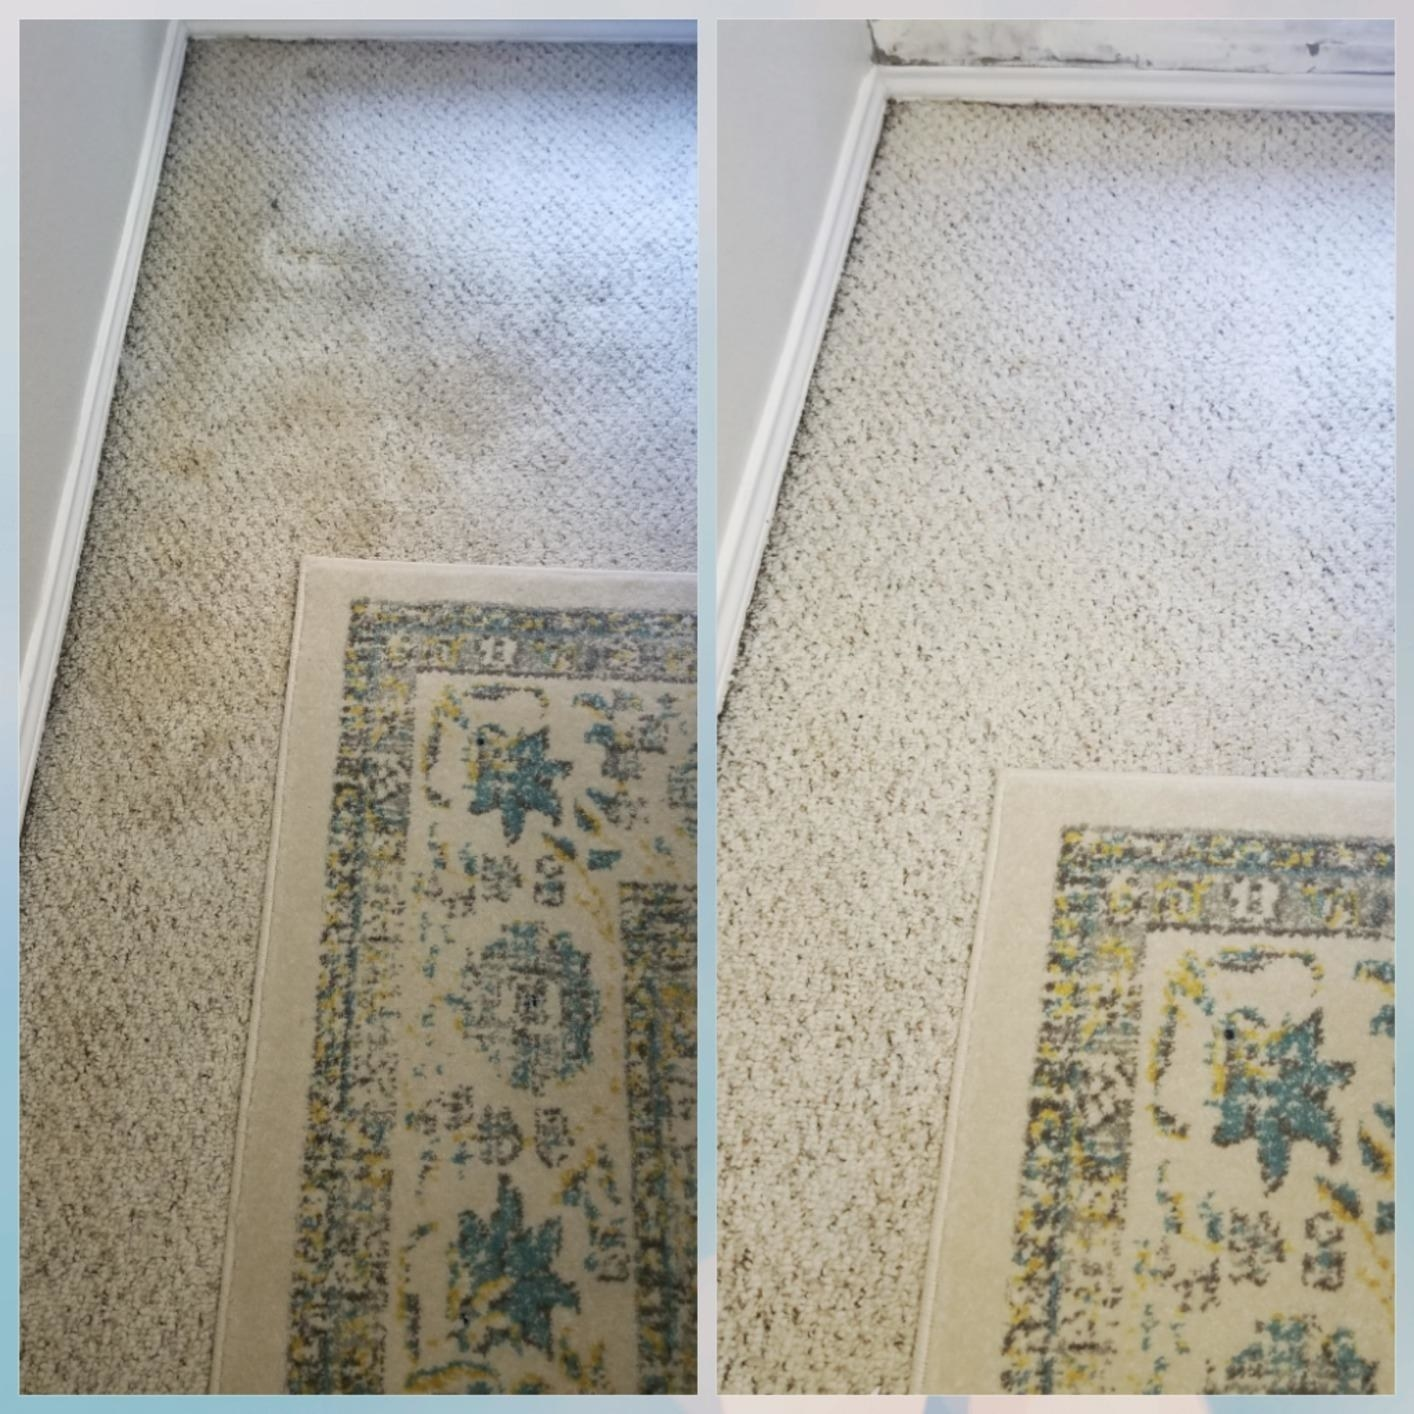 On left, reviewer's dirty carpet before using instant stain remover. On right, same carpet with less discoloration and stains